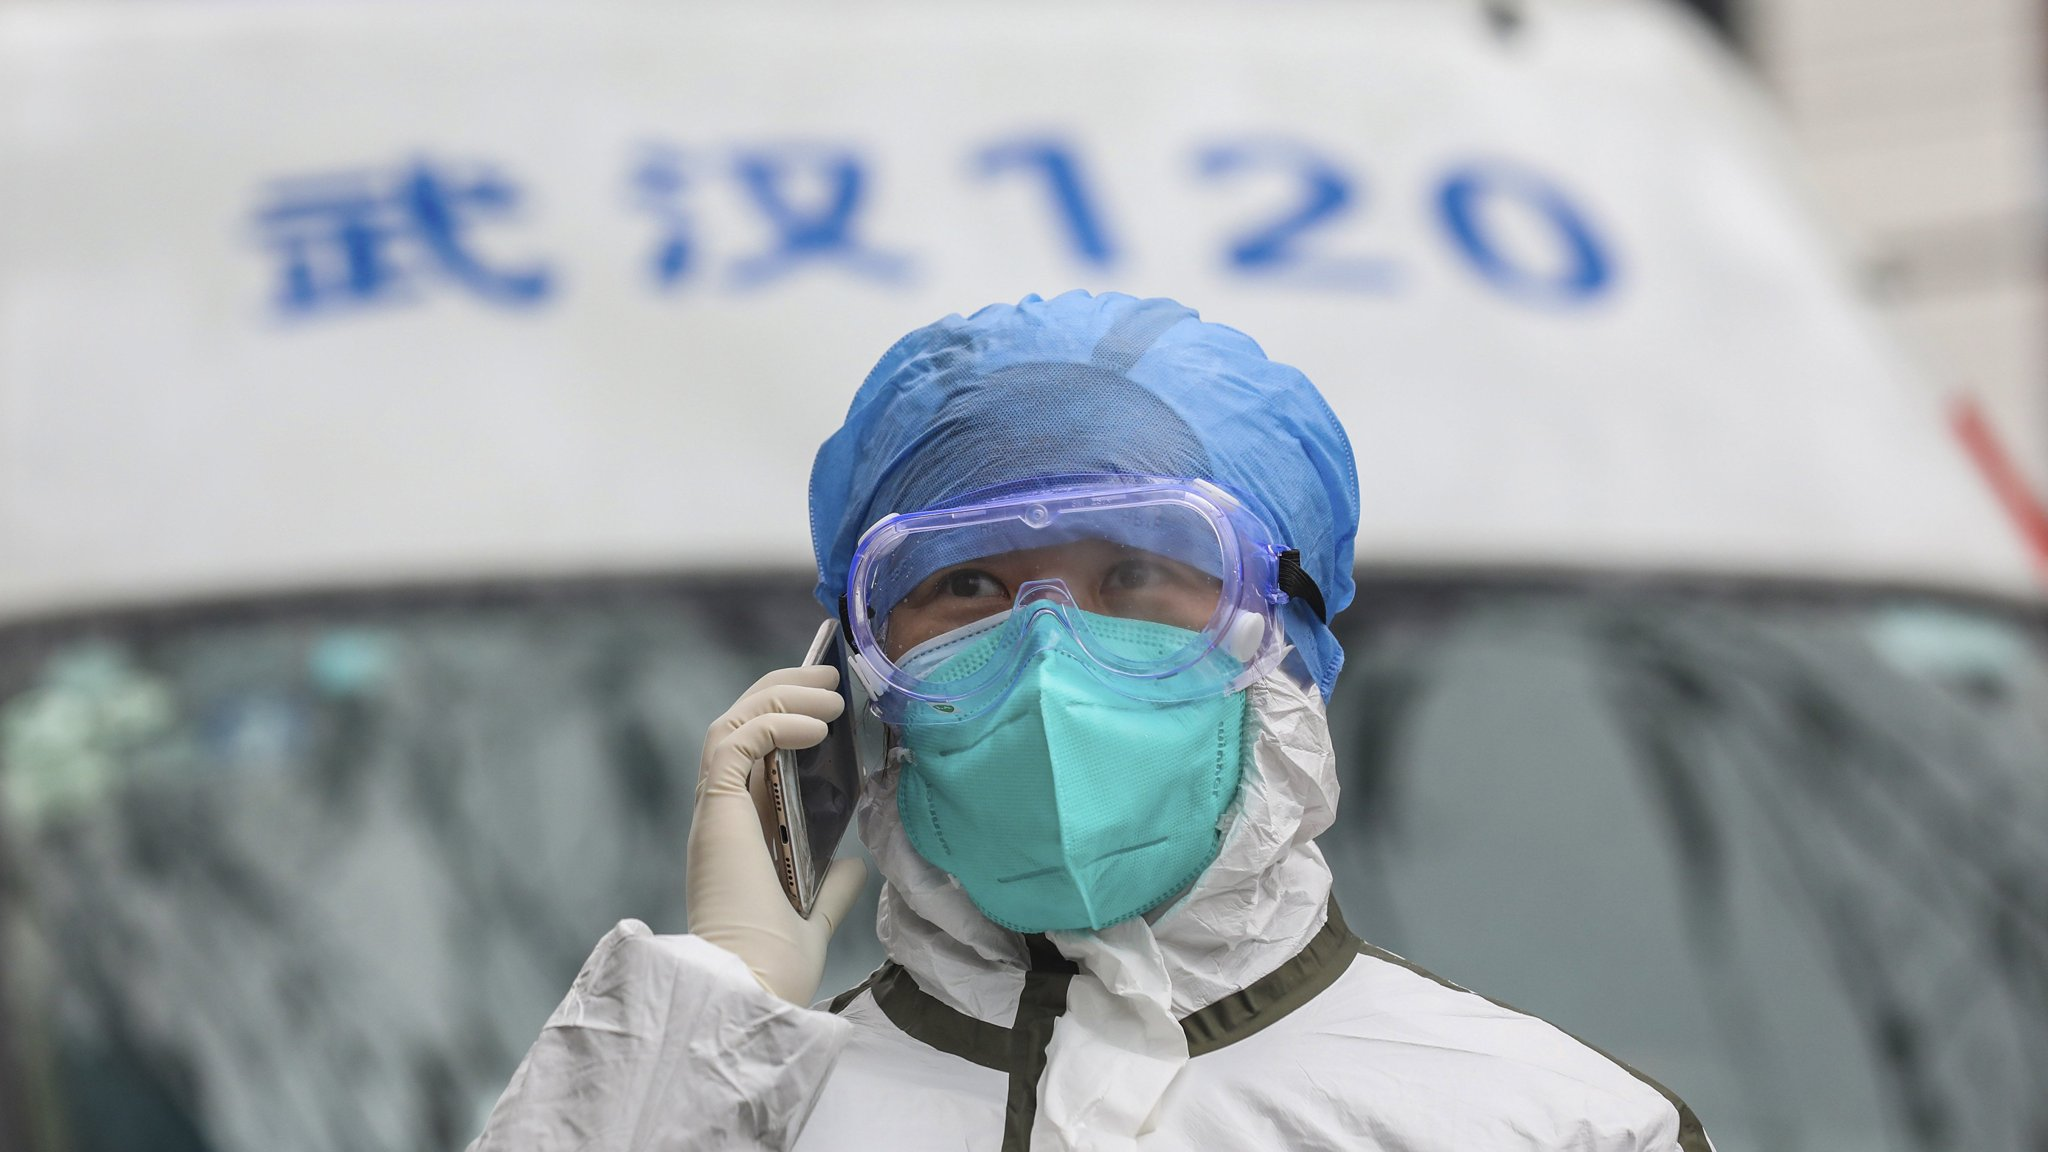 China Braces For Blow To Economic Growth From Coronavirus